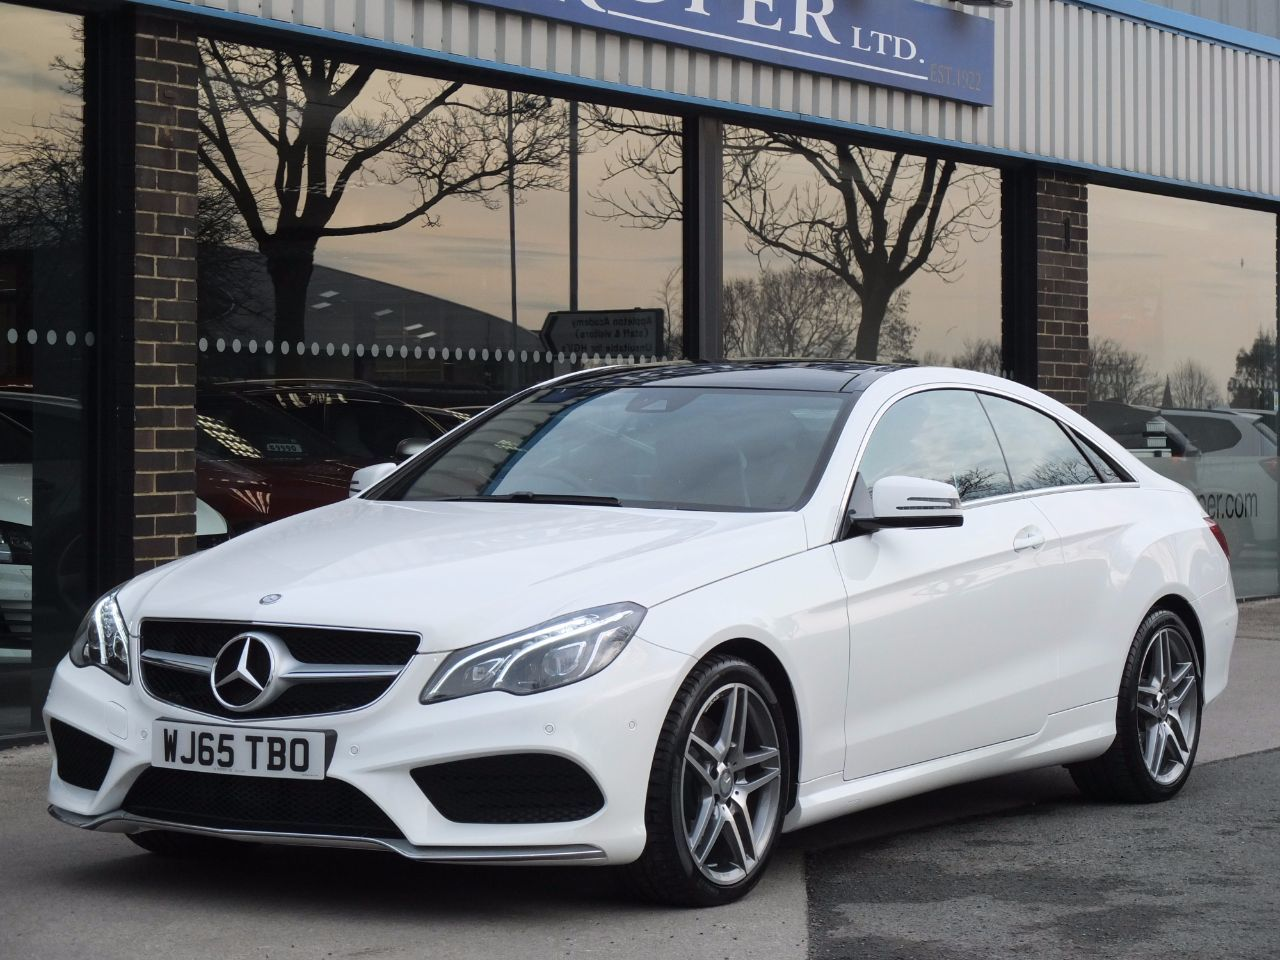 Mercedes-Benz E Class 2.1 E220 CDI BlueTEC Coupe AMG Line 7G-Tronic Auto Coupe Diesel Polar WhiteMercedes-Benz E Class 2.1 E220 CDI BlueTEC Coupe AMG Line 7G-Tronic Auto Coupe Diesel Polar White at fa Roper Ltd Bradford